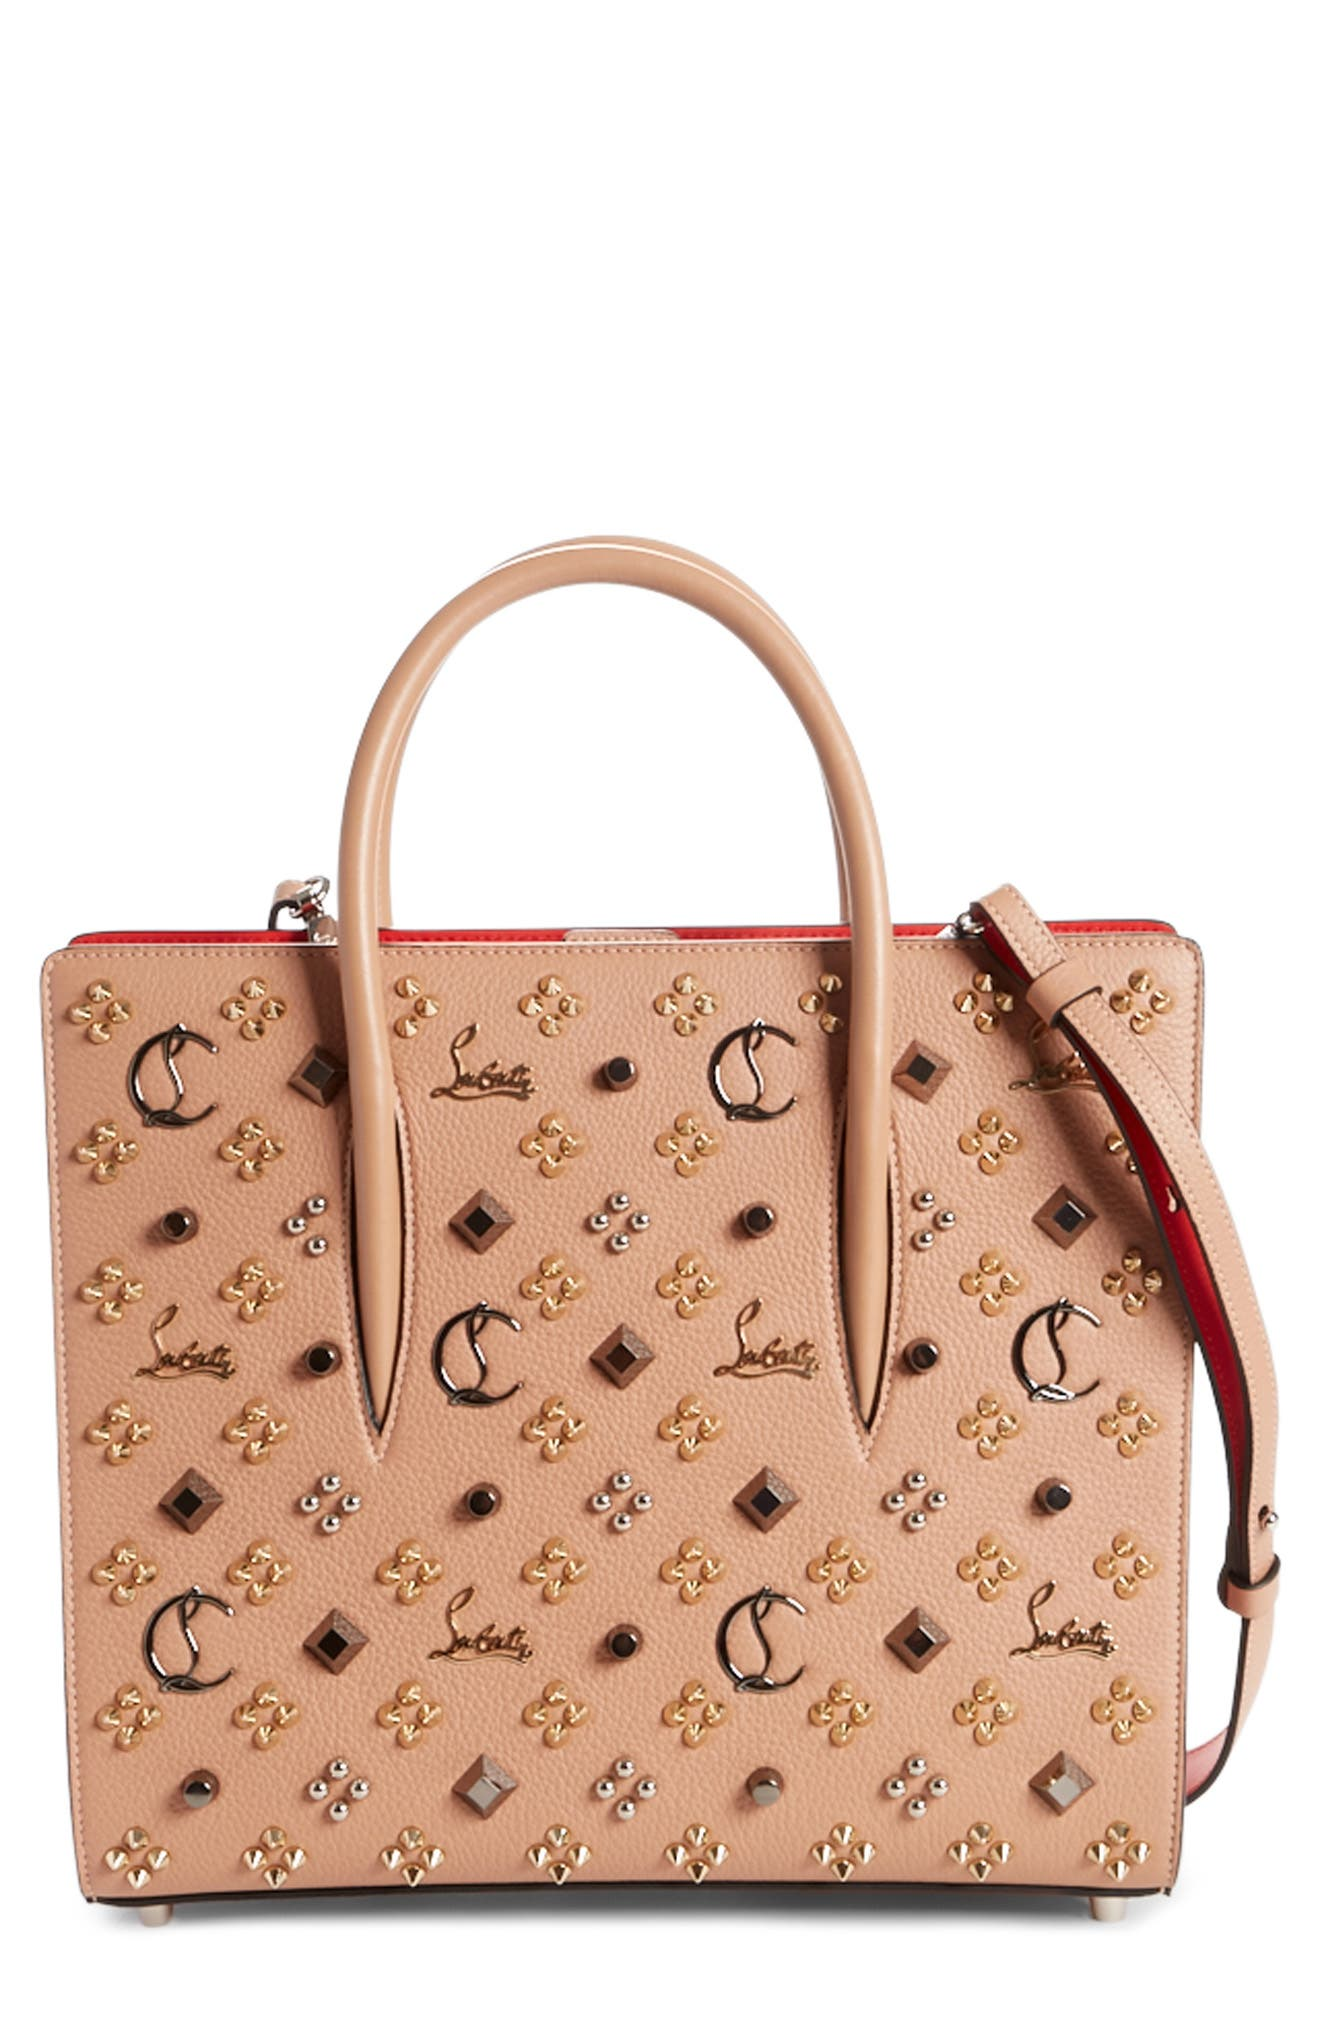 Alternate Image 1 Selected - Christian Louboutin Medium Paloma Leather Tote